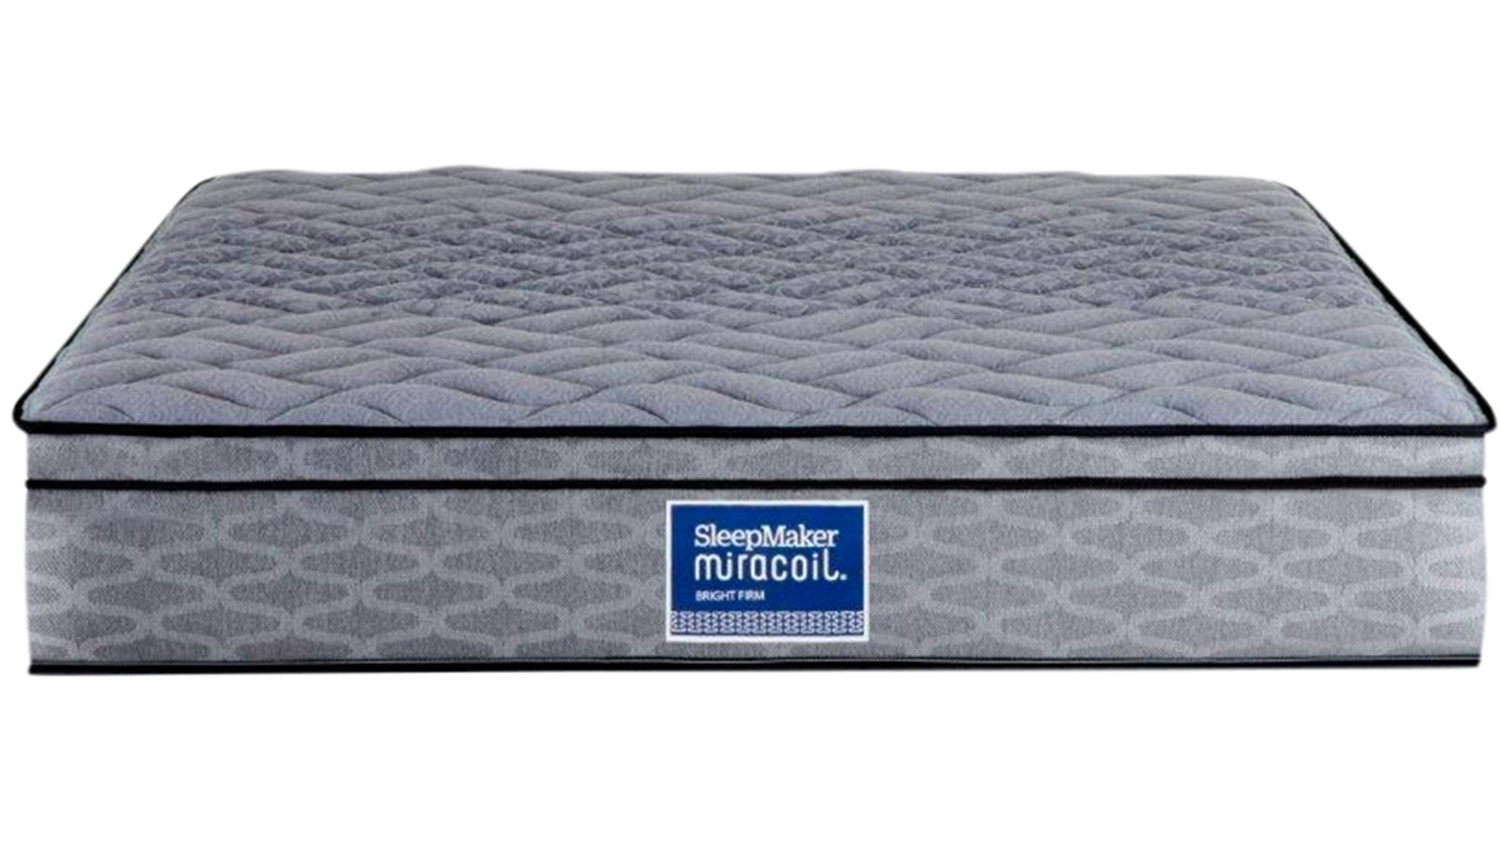 Sleepmaker Miracoil Bright Firm Mattress